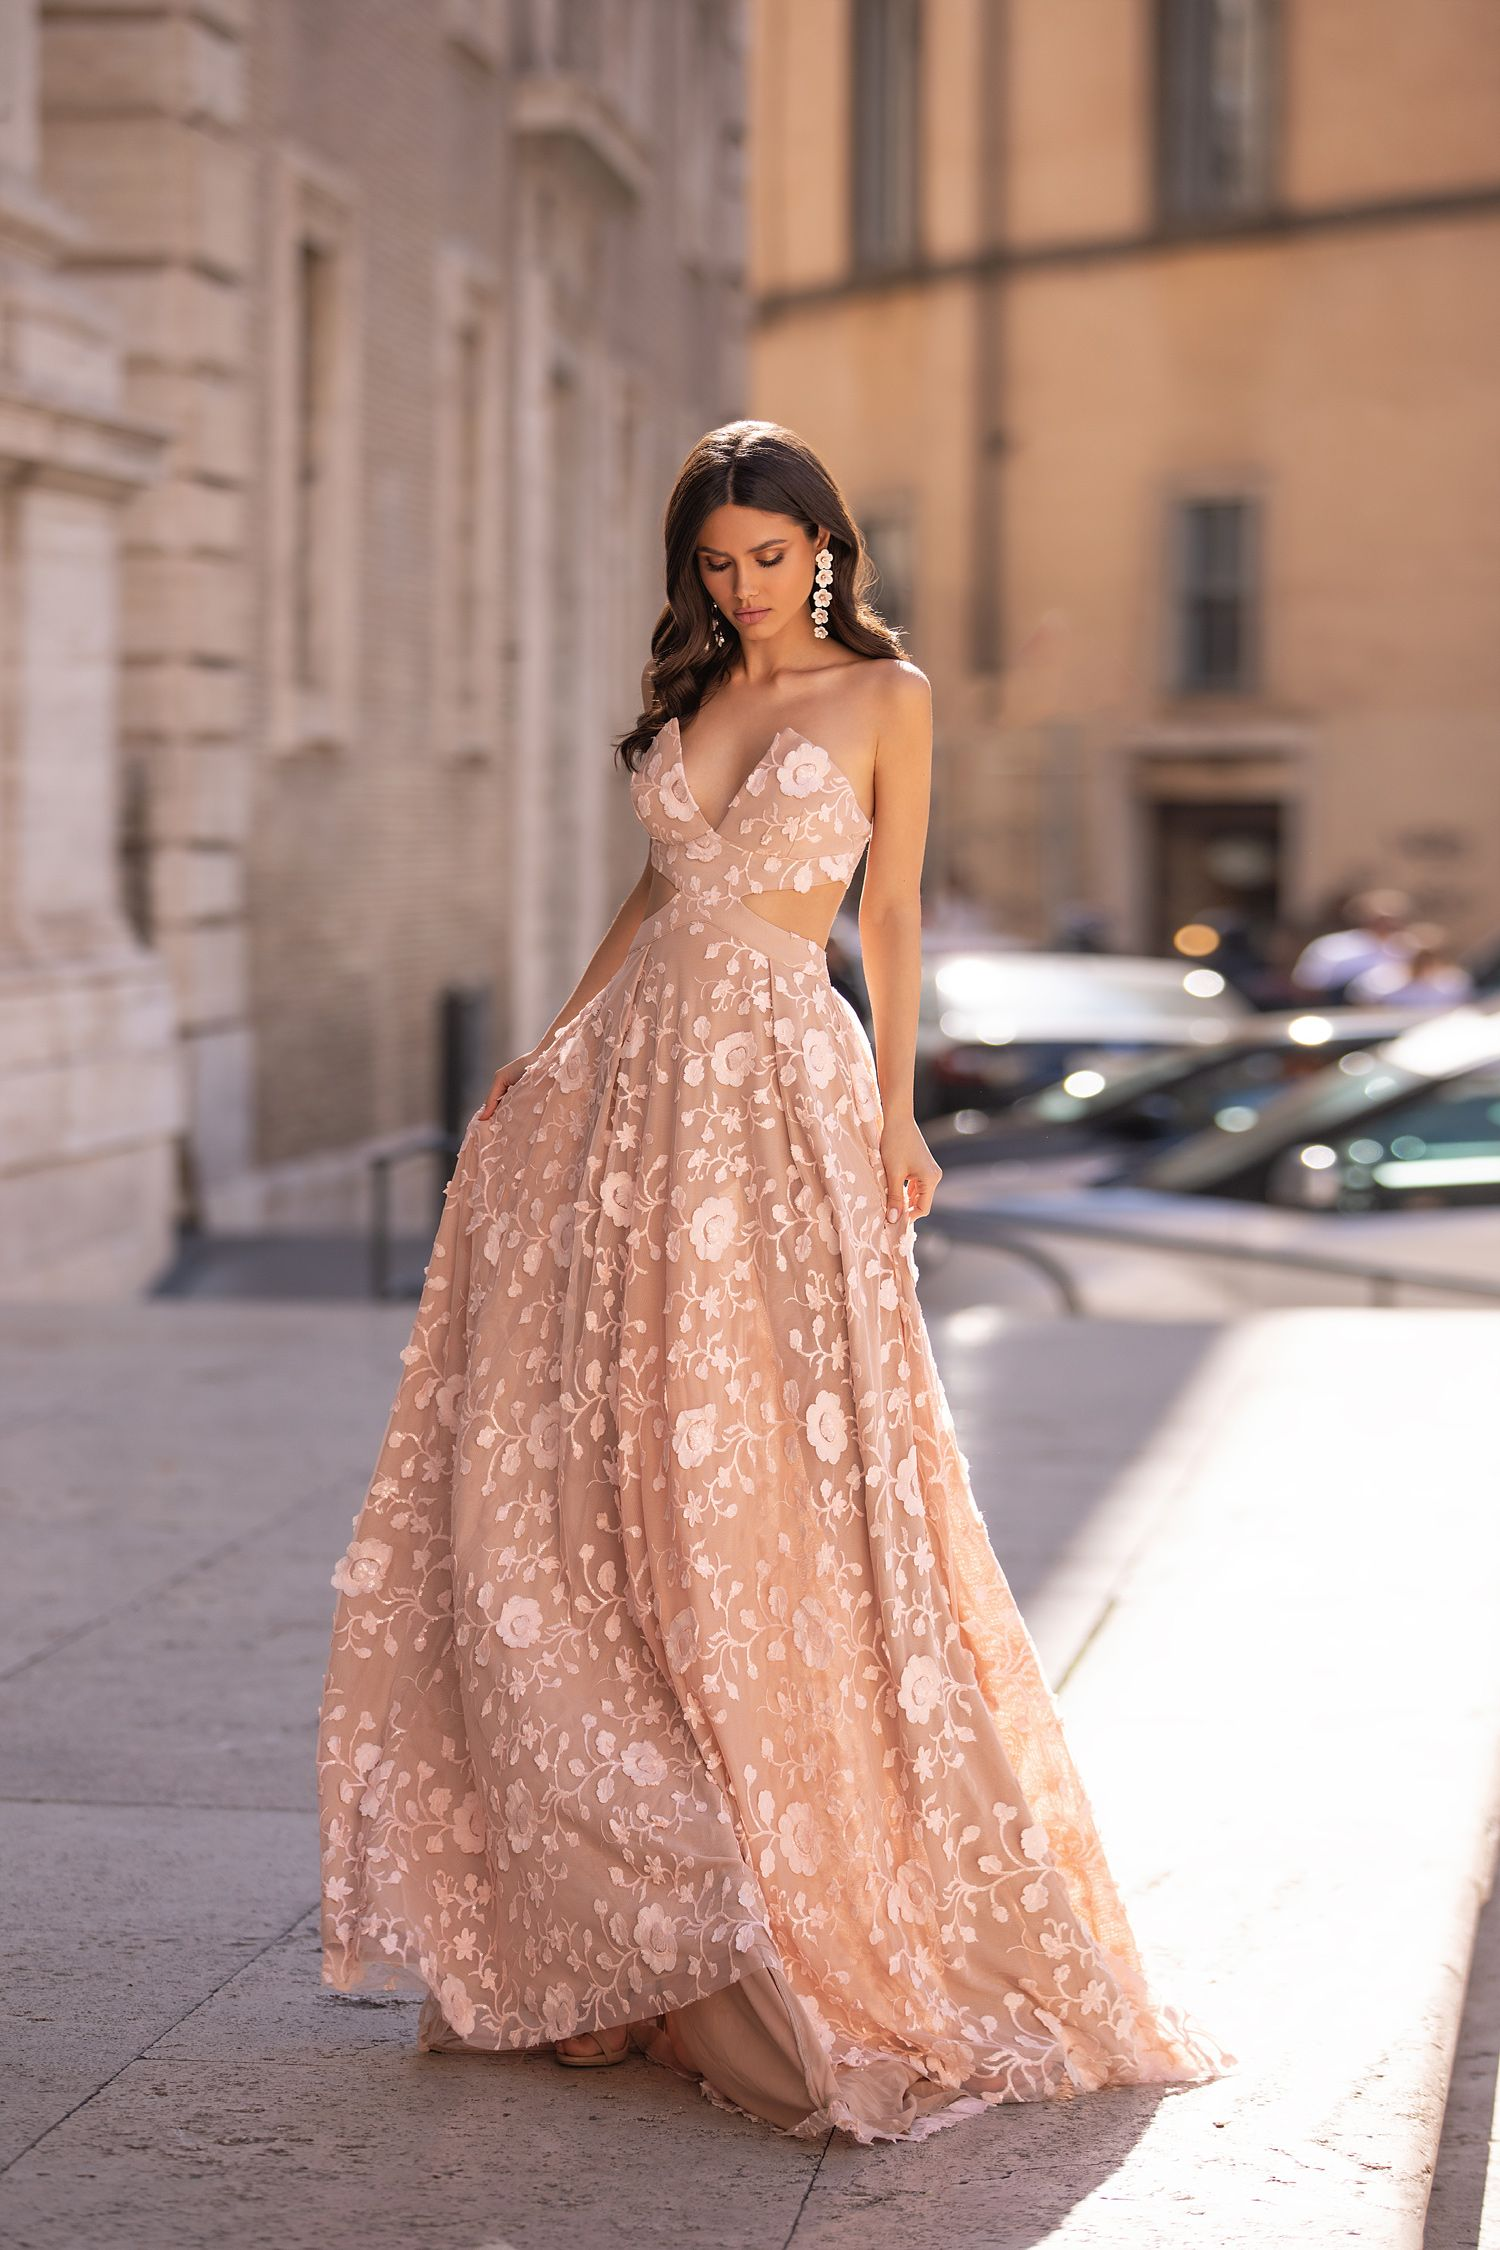 Fiorella In 2020 Pink Formal Dresses Formal Dresses For Weddings Stylish Gown